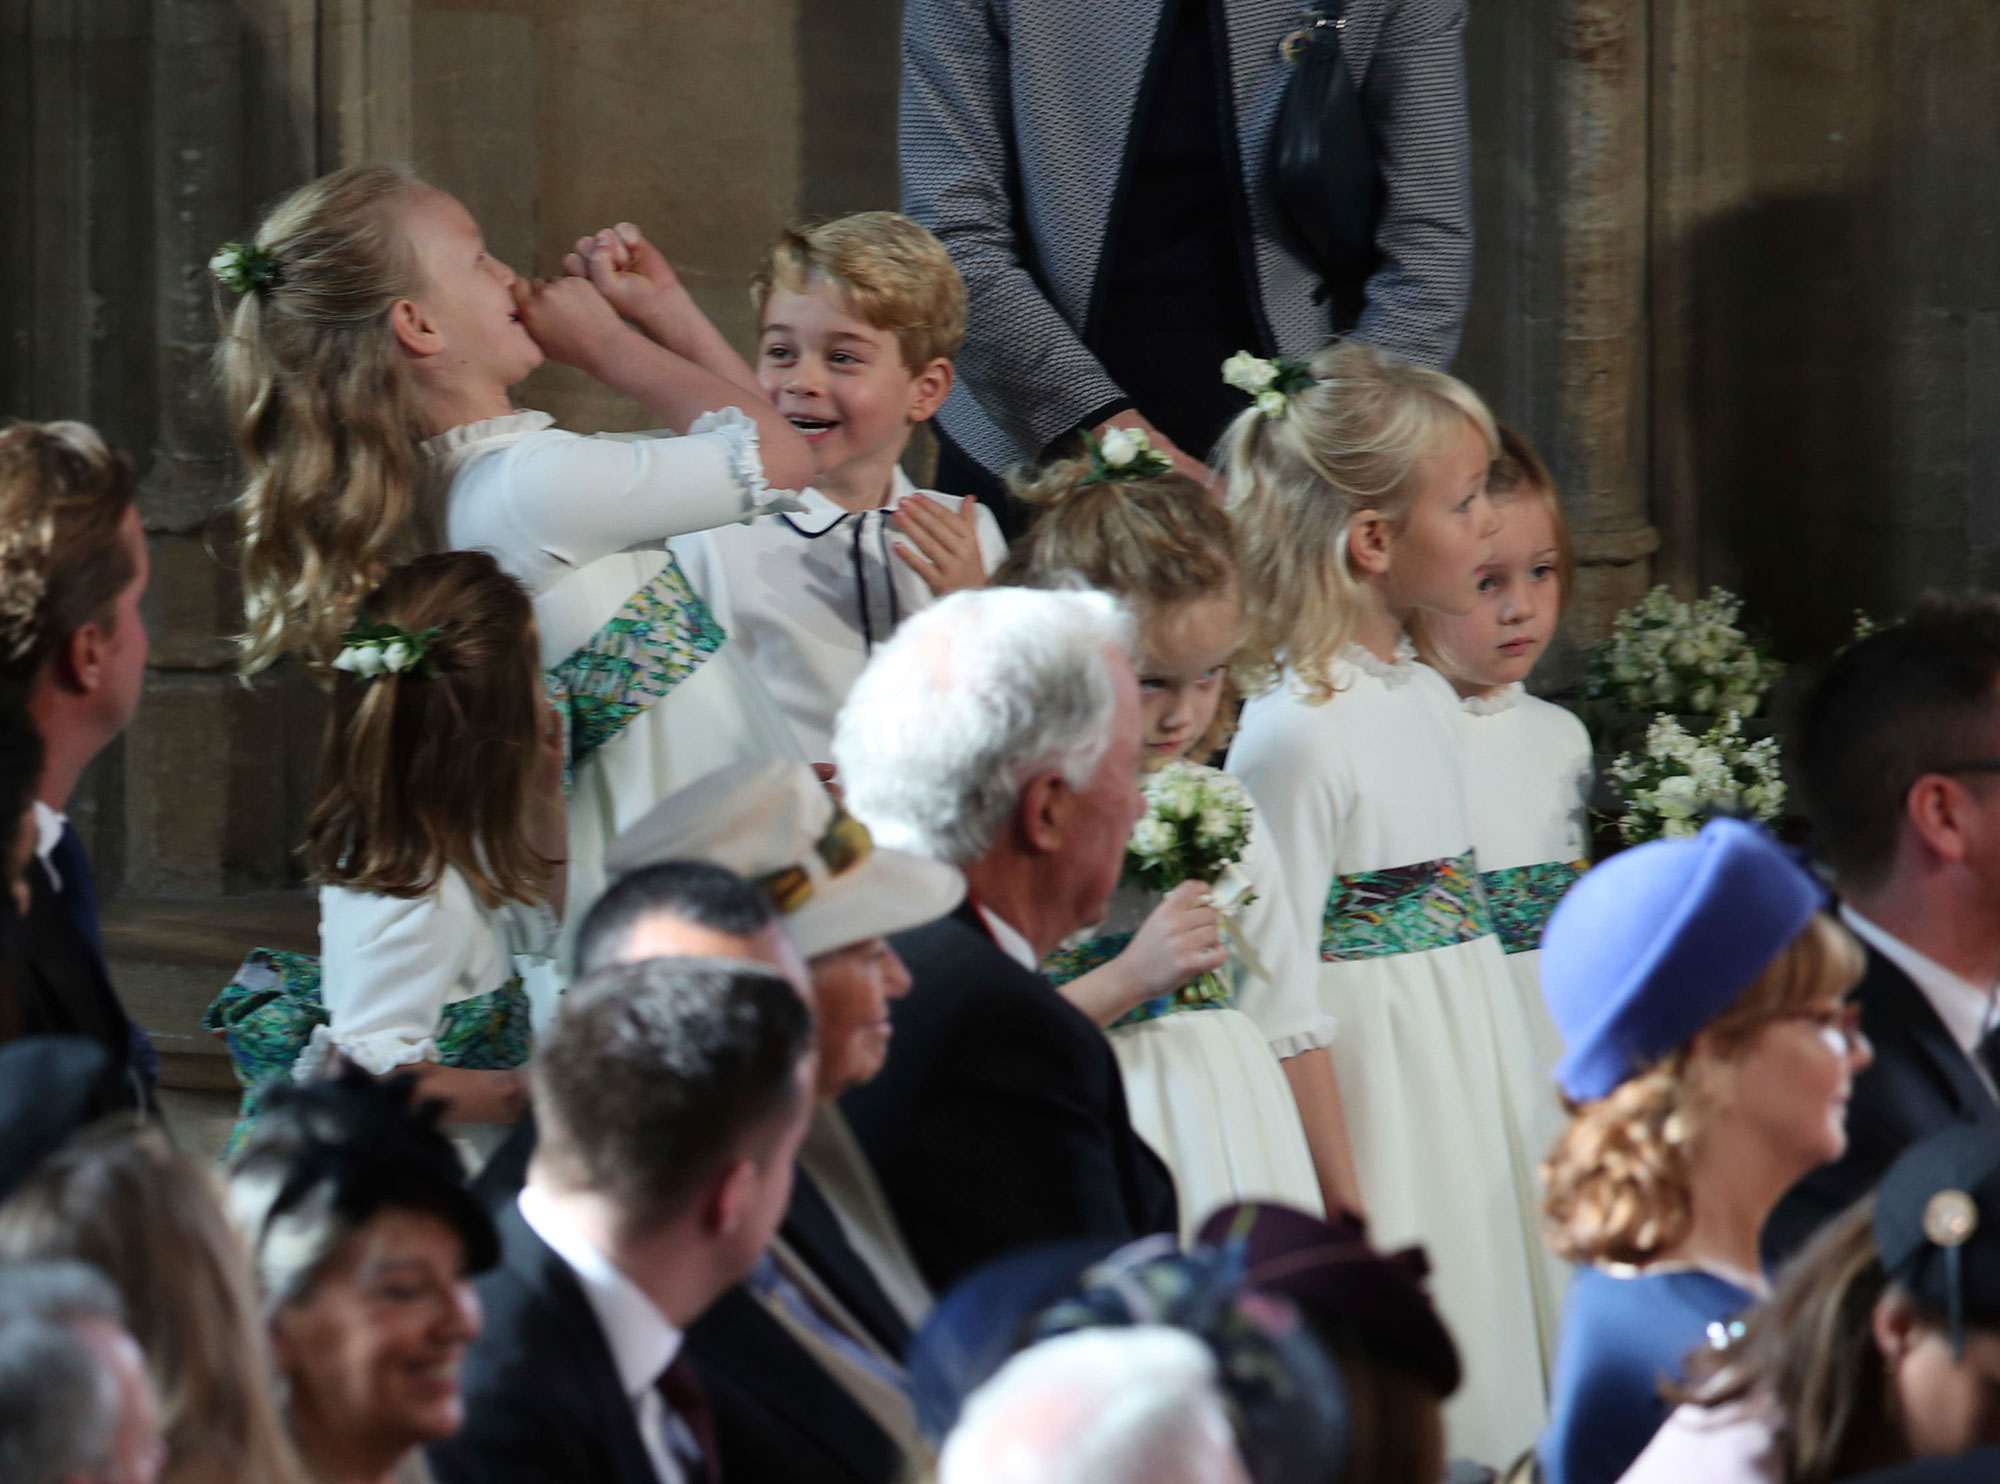 <div class='meta'><div class='origin-logo' data-origin='none'></div><span class='caption-text' data-credit='Yui Mok, Pool via AP'>The bridesmaids and page boys, including Prince George and Princess Charlotte, arrive for the wedding of Princess Eugenie of York and Jack Brooksbank on Oct. 12, 2018</span></div>